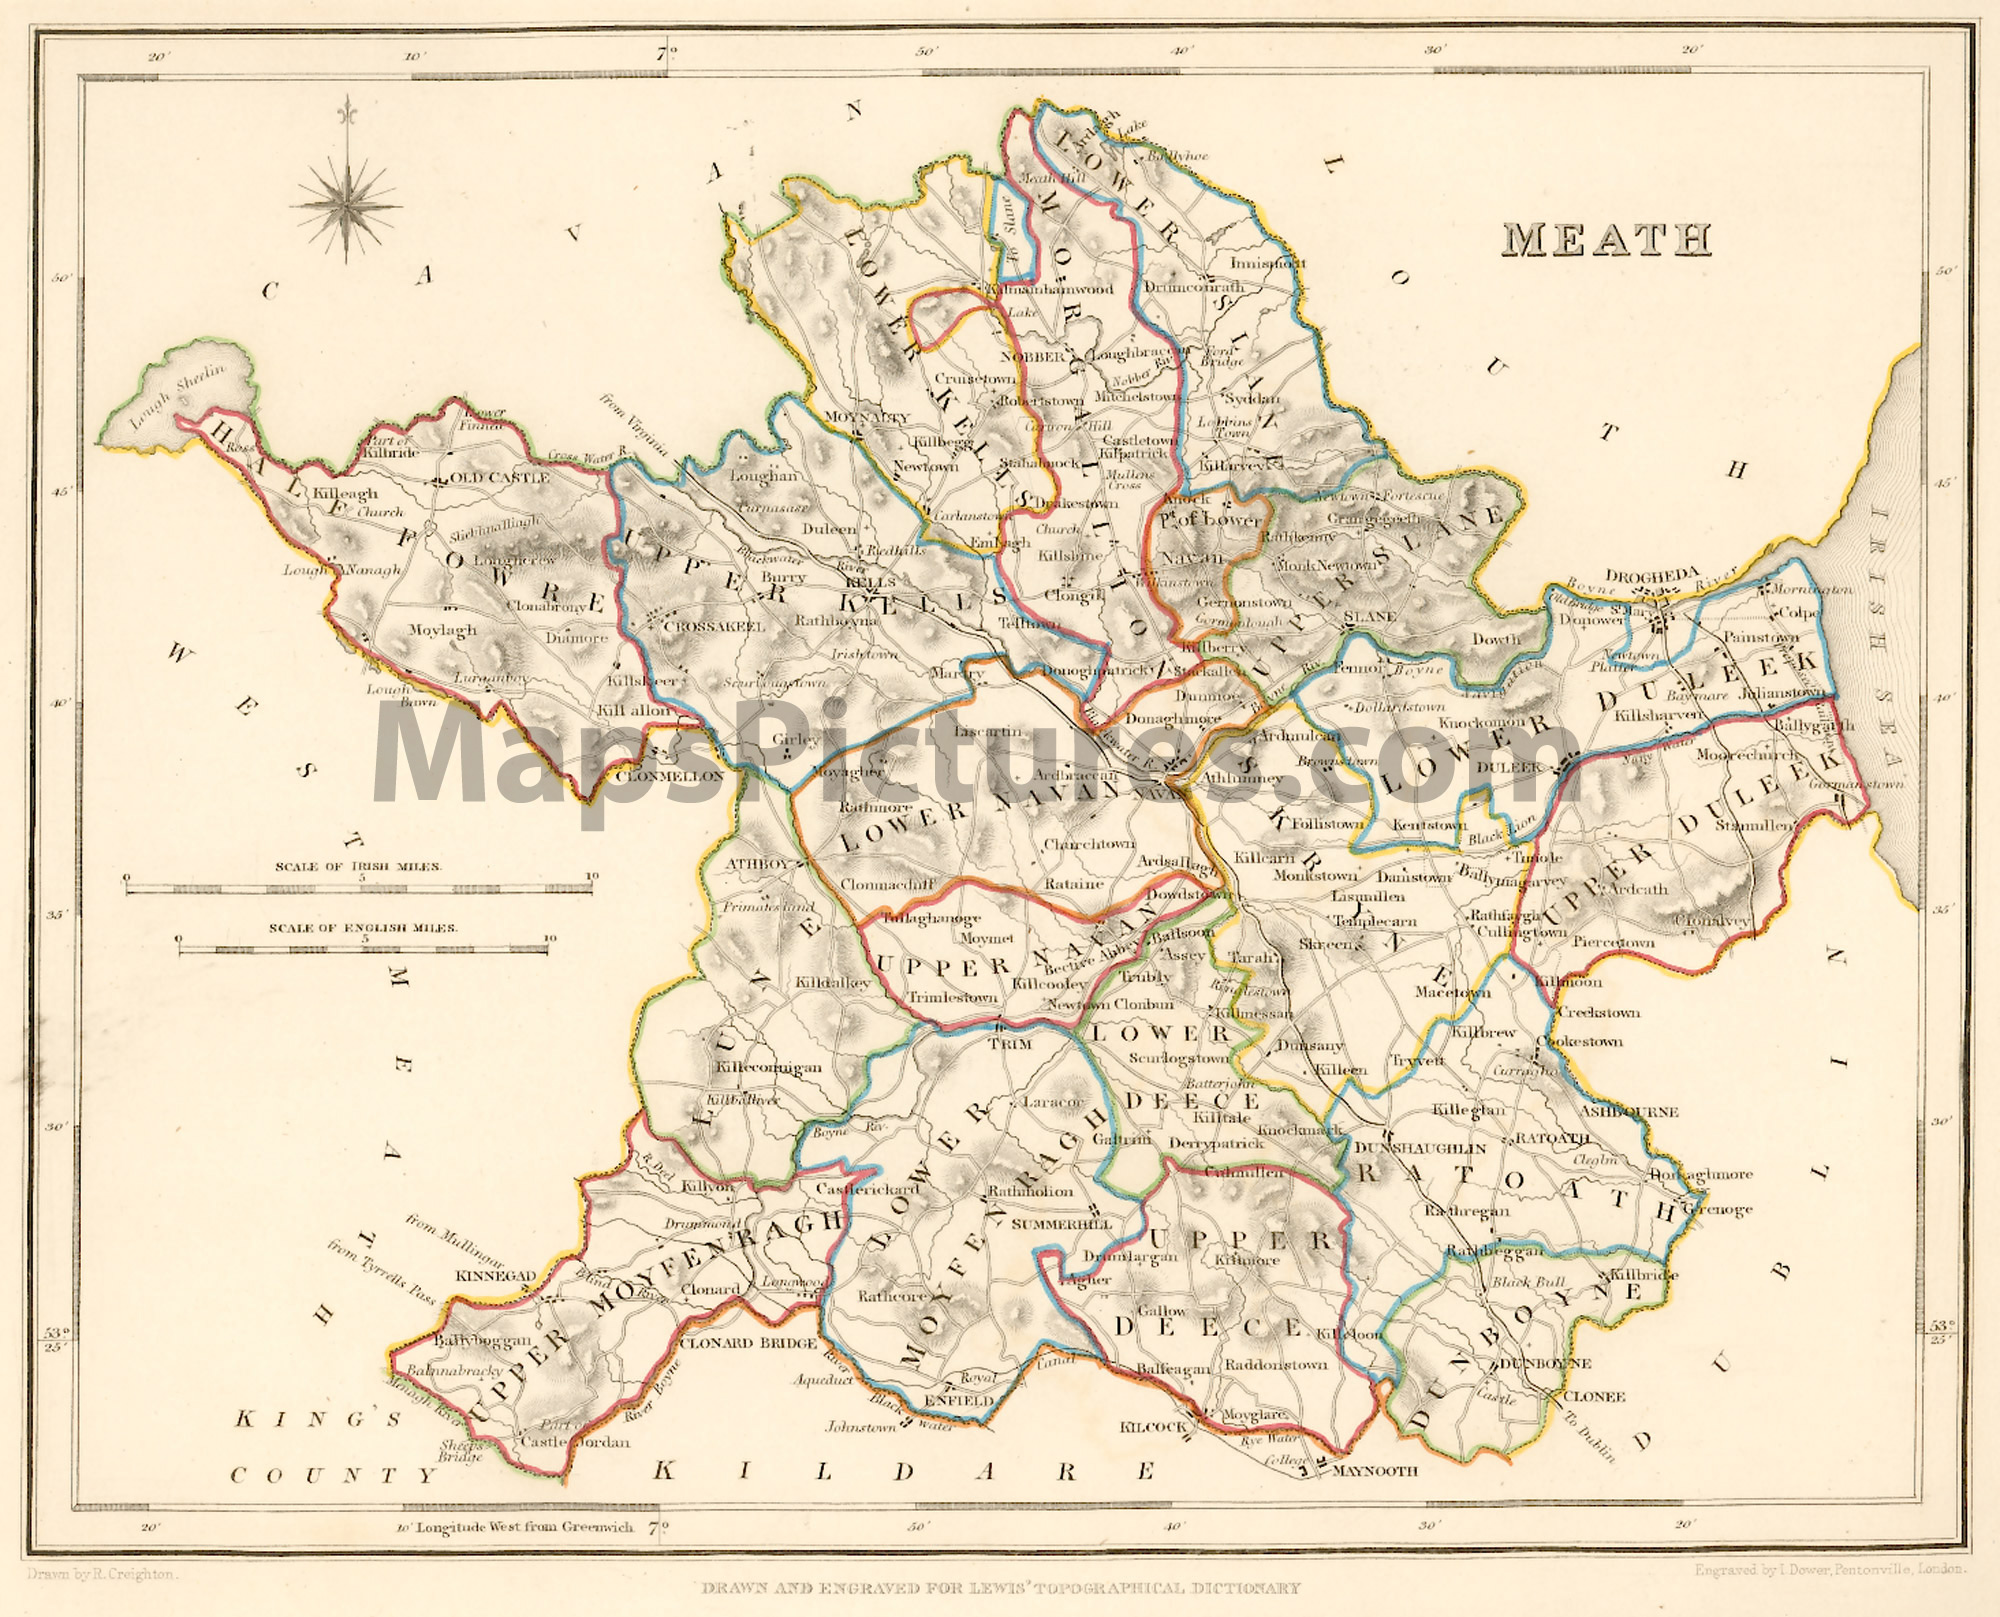 Map Of Co Meath Ireland.County Meath Ireland Map 1837